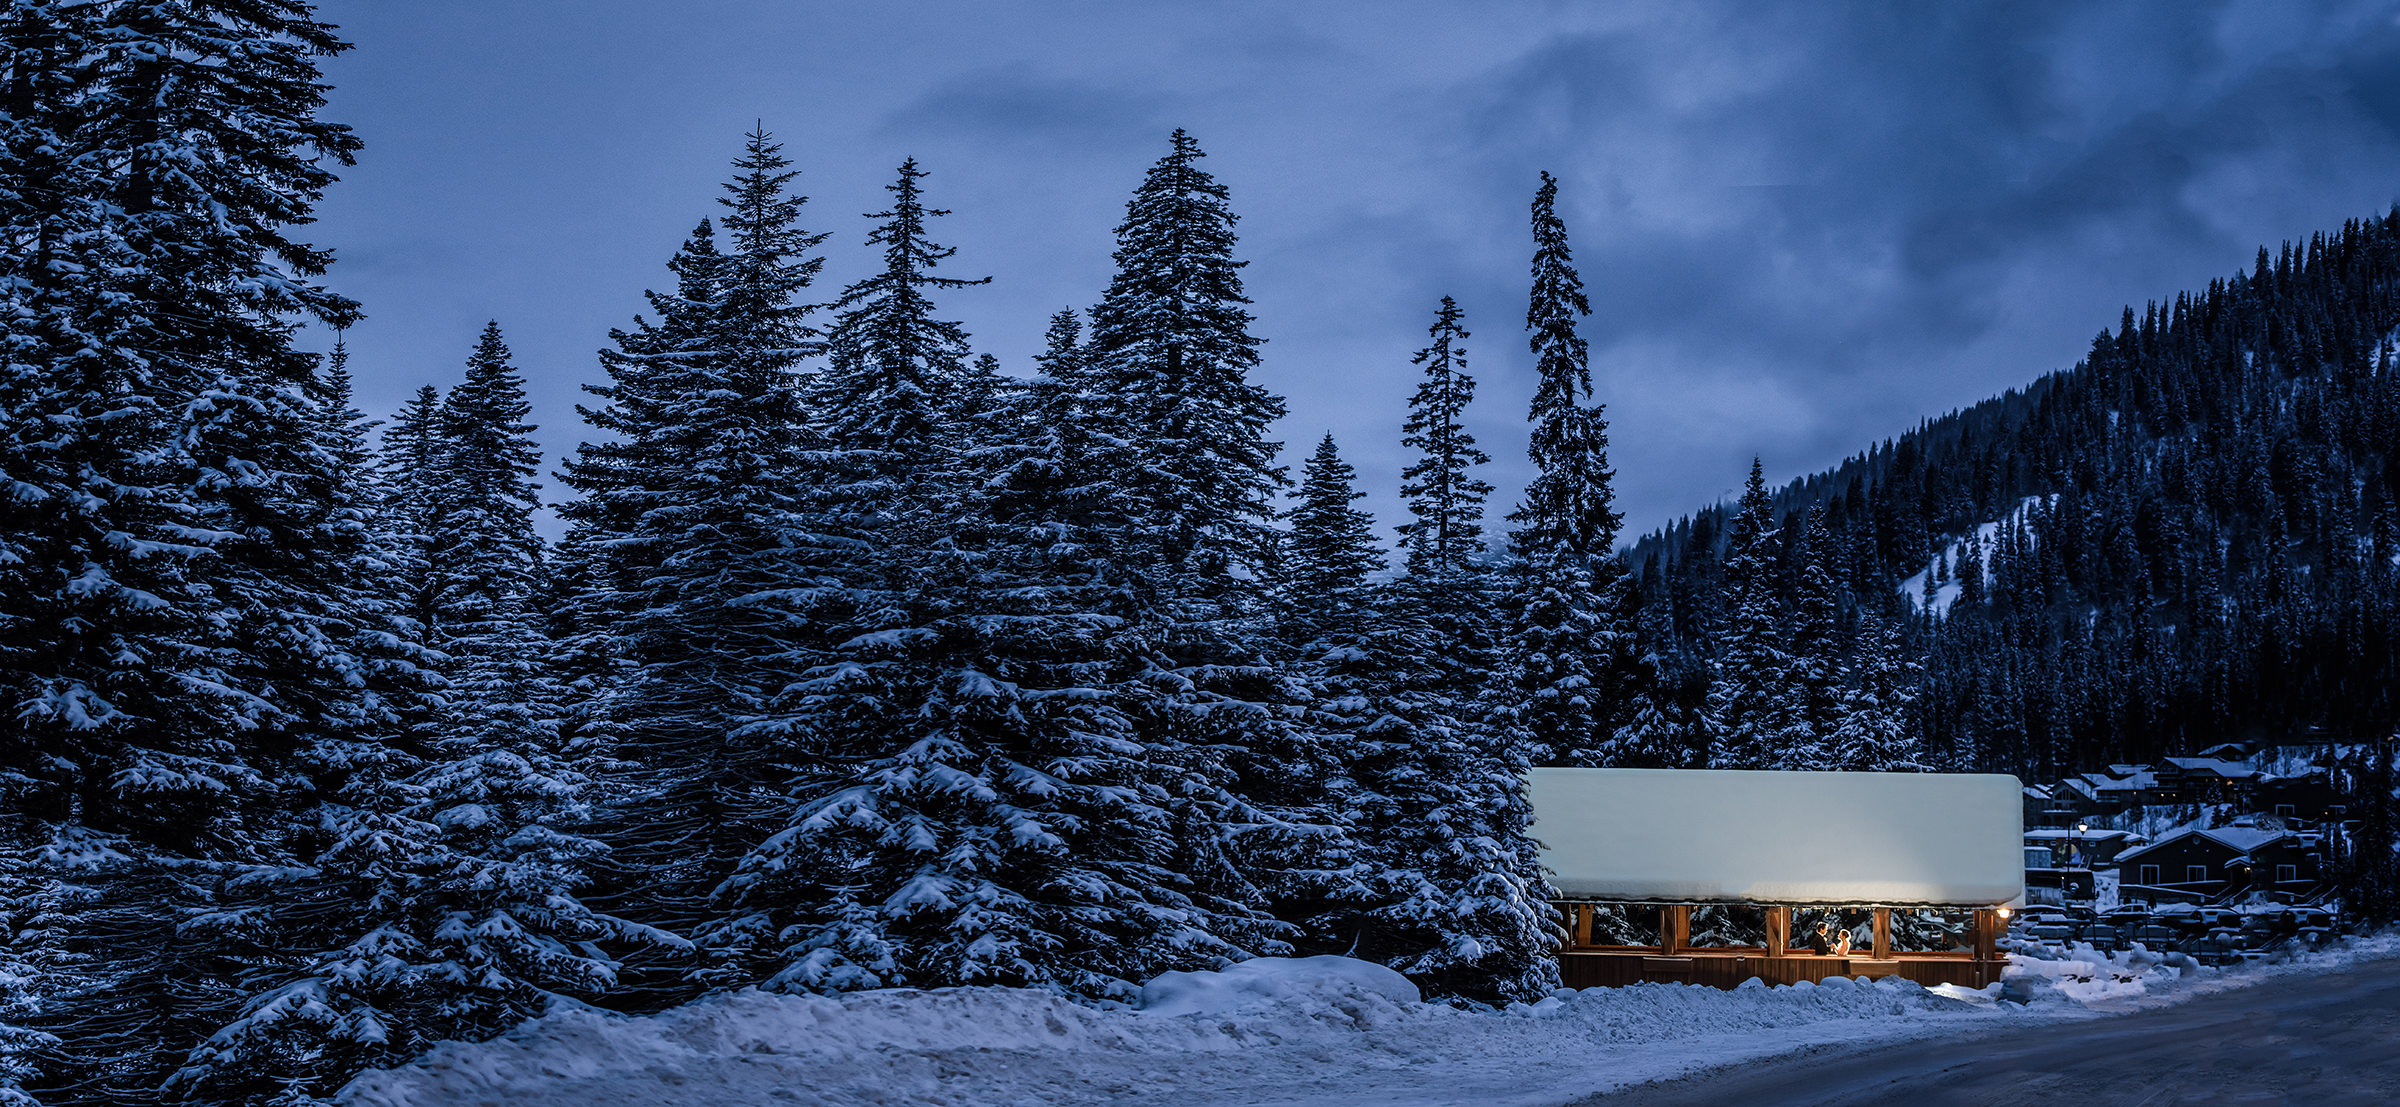 Sun Peaks Grand outside covered bridge in the snow - photo by David & Sherry Photography